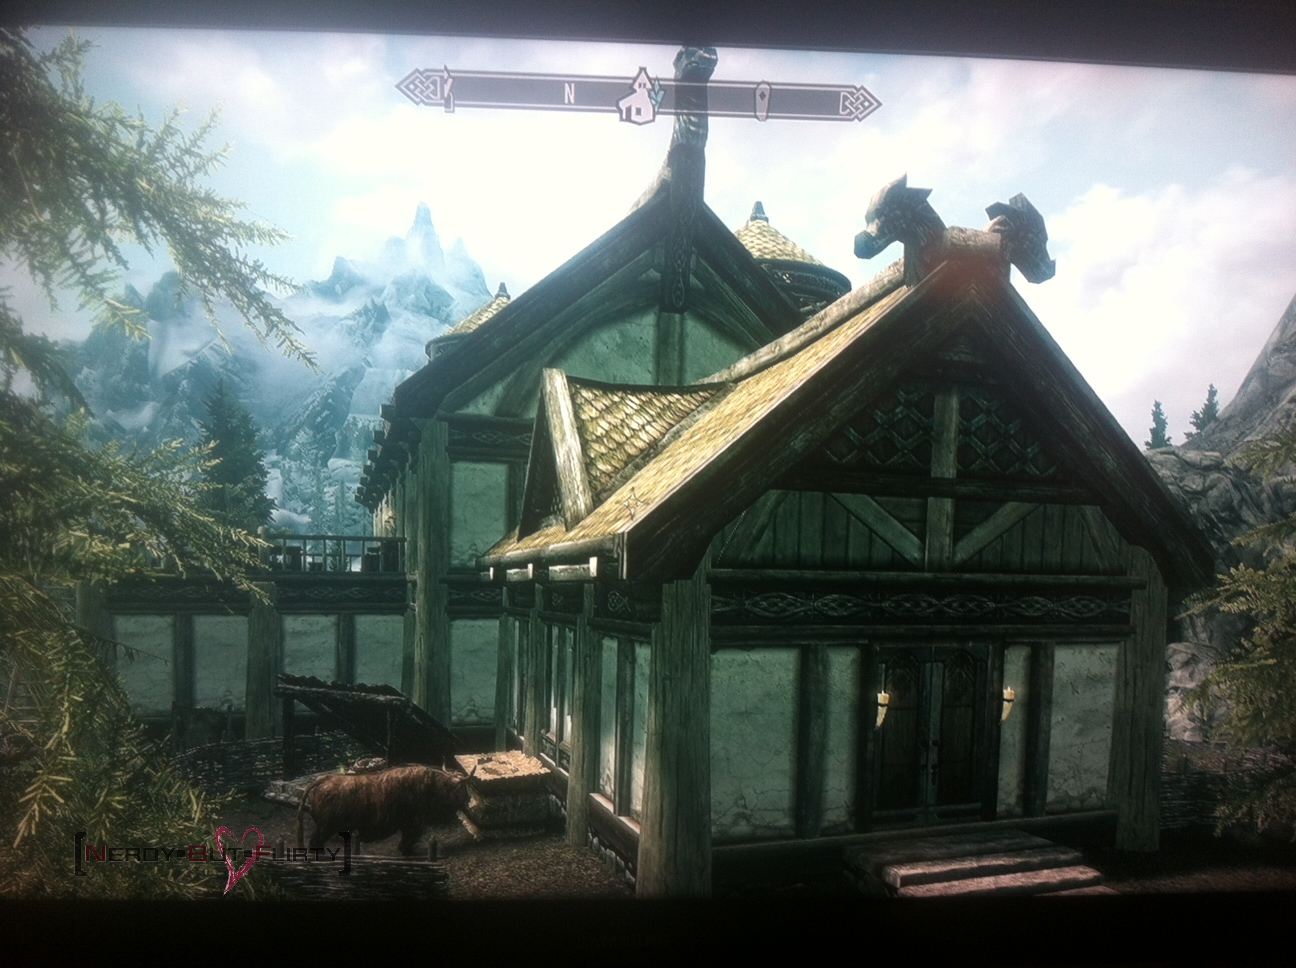 Skyrim's Hearthfire Ignites My Passion for Home Building and